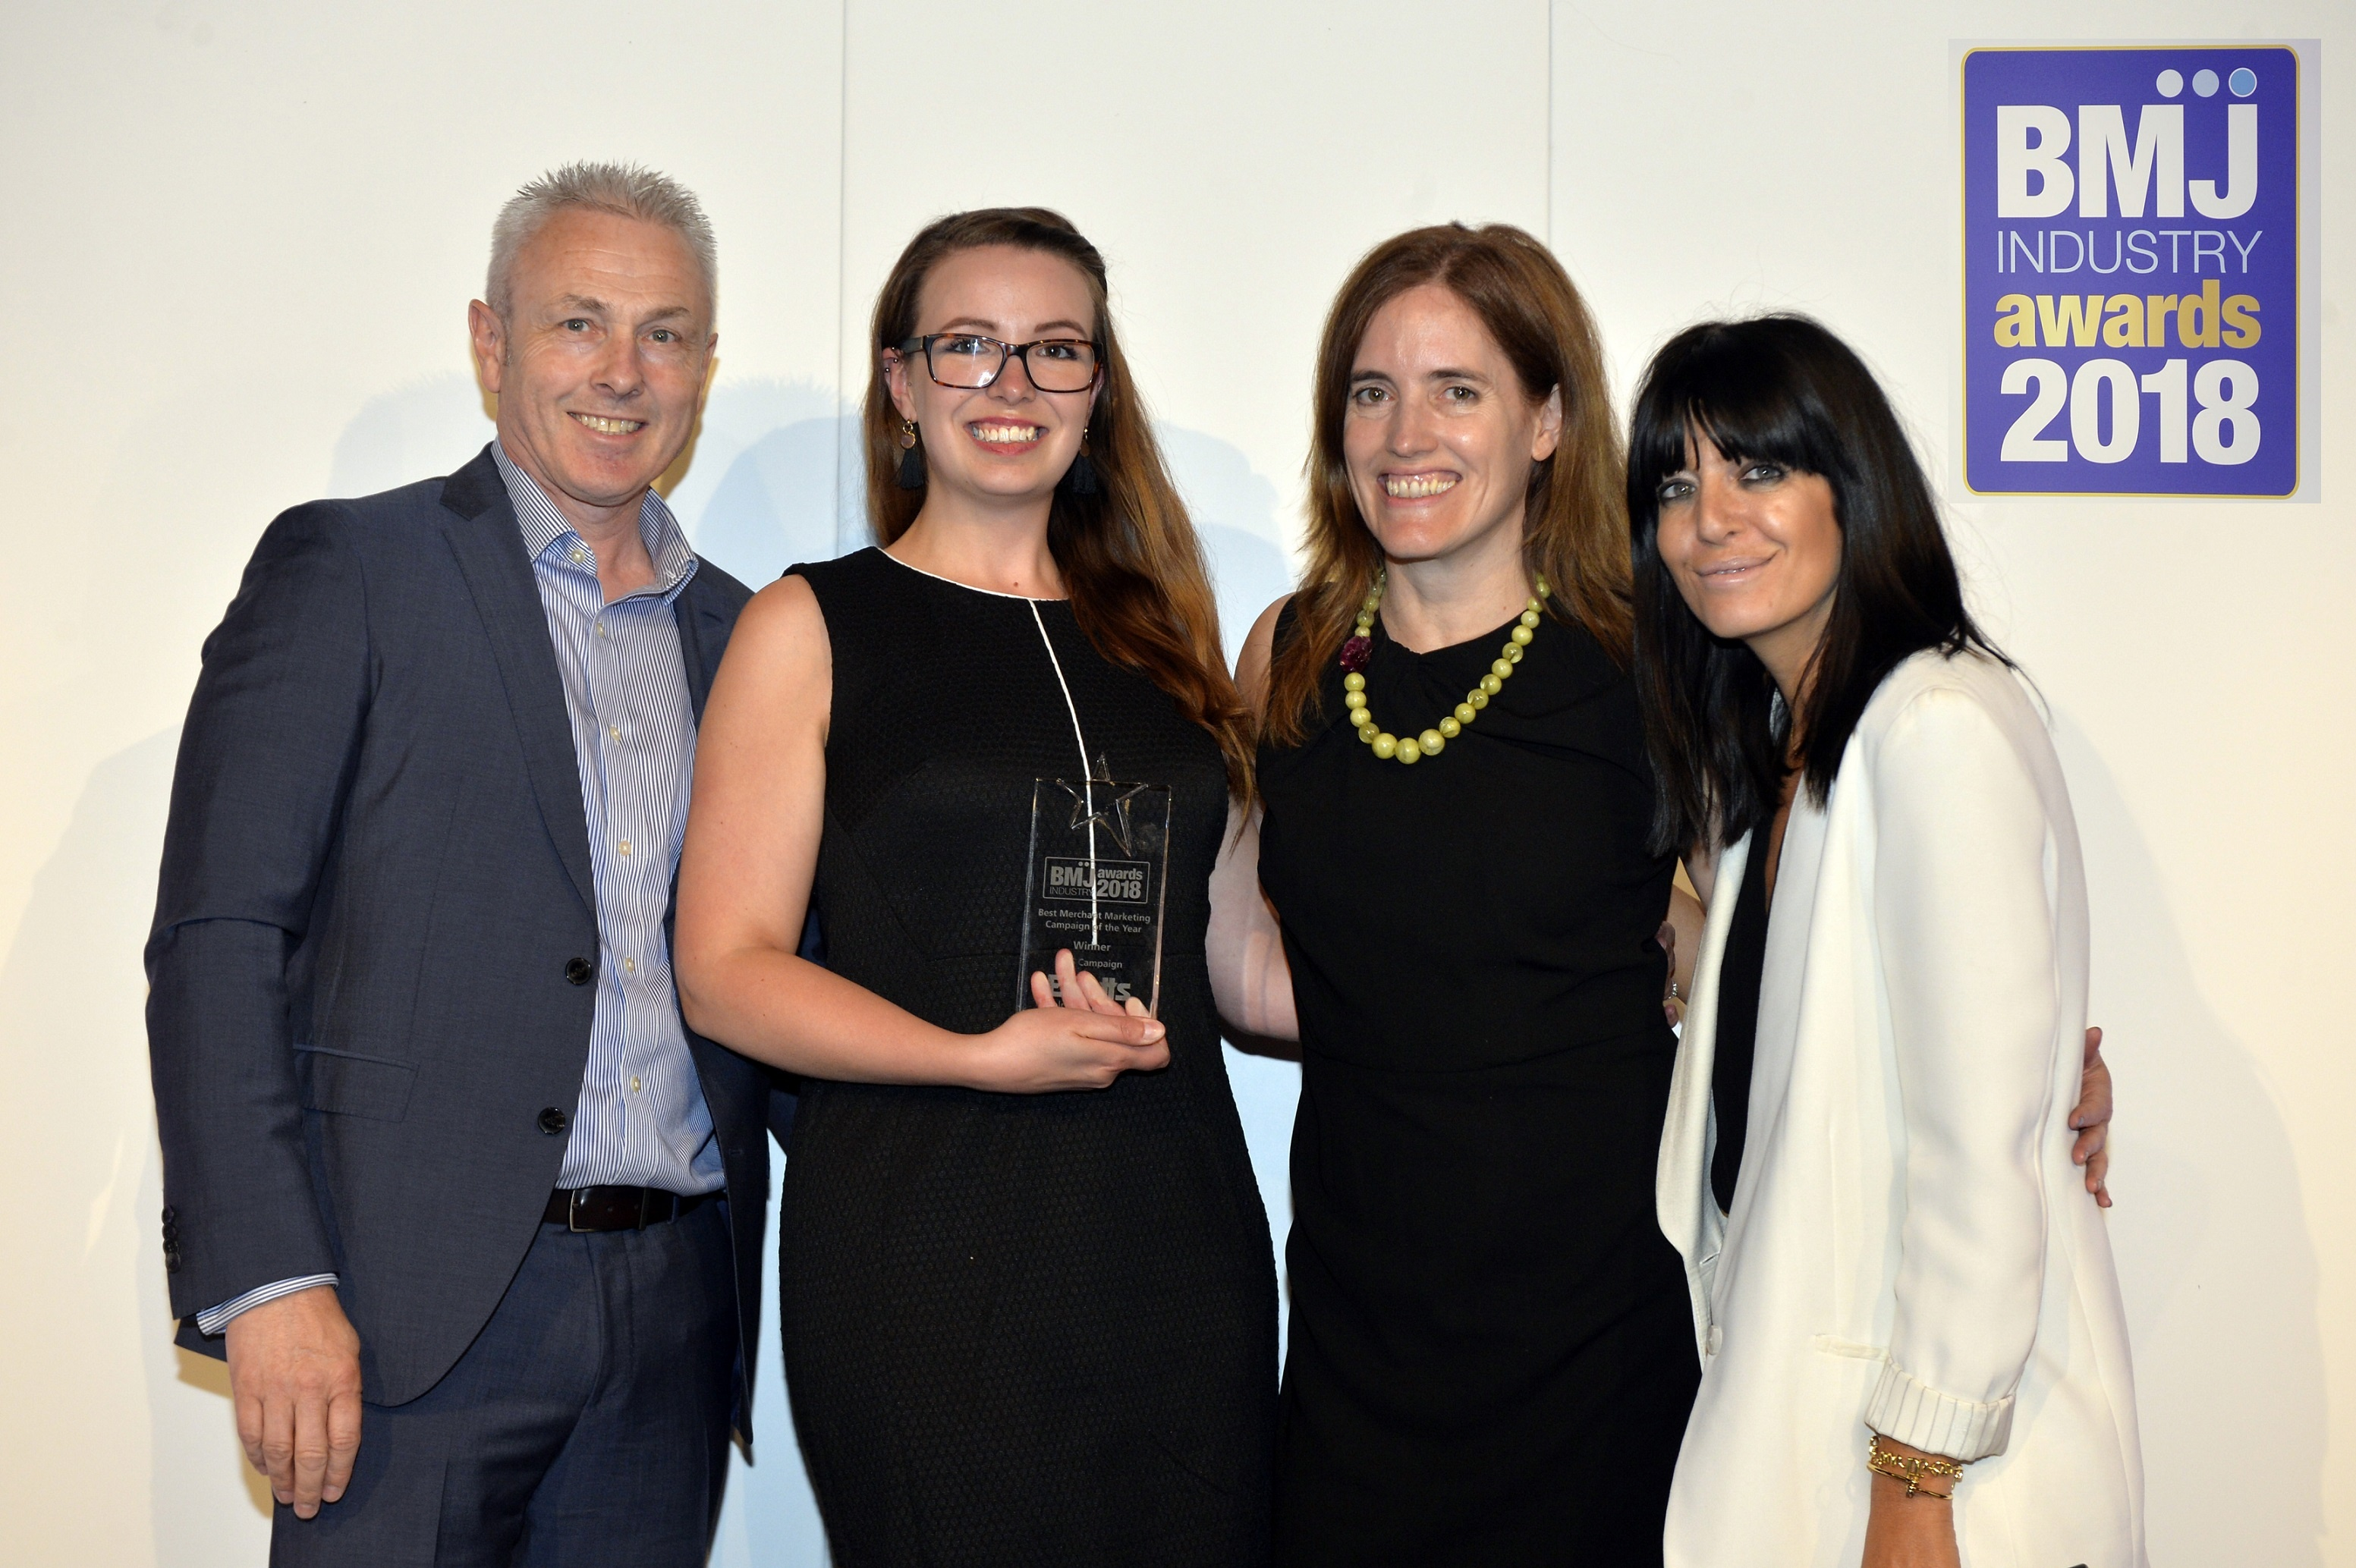 Emma Tweney and Julie Shaw collect the award for Best Merchant Marketing Campaign